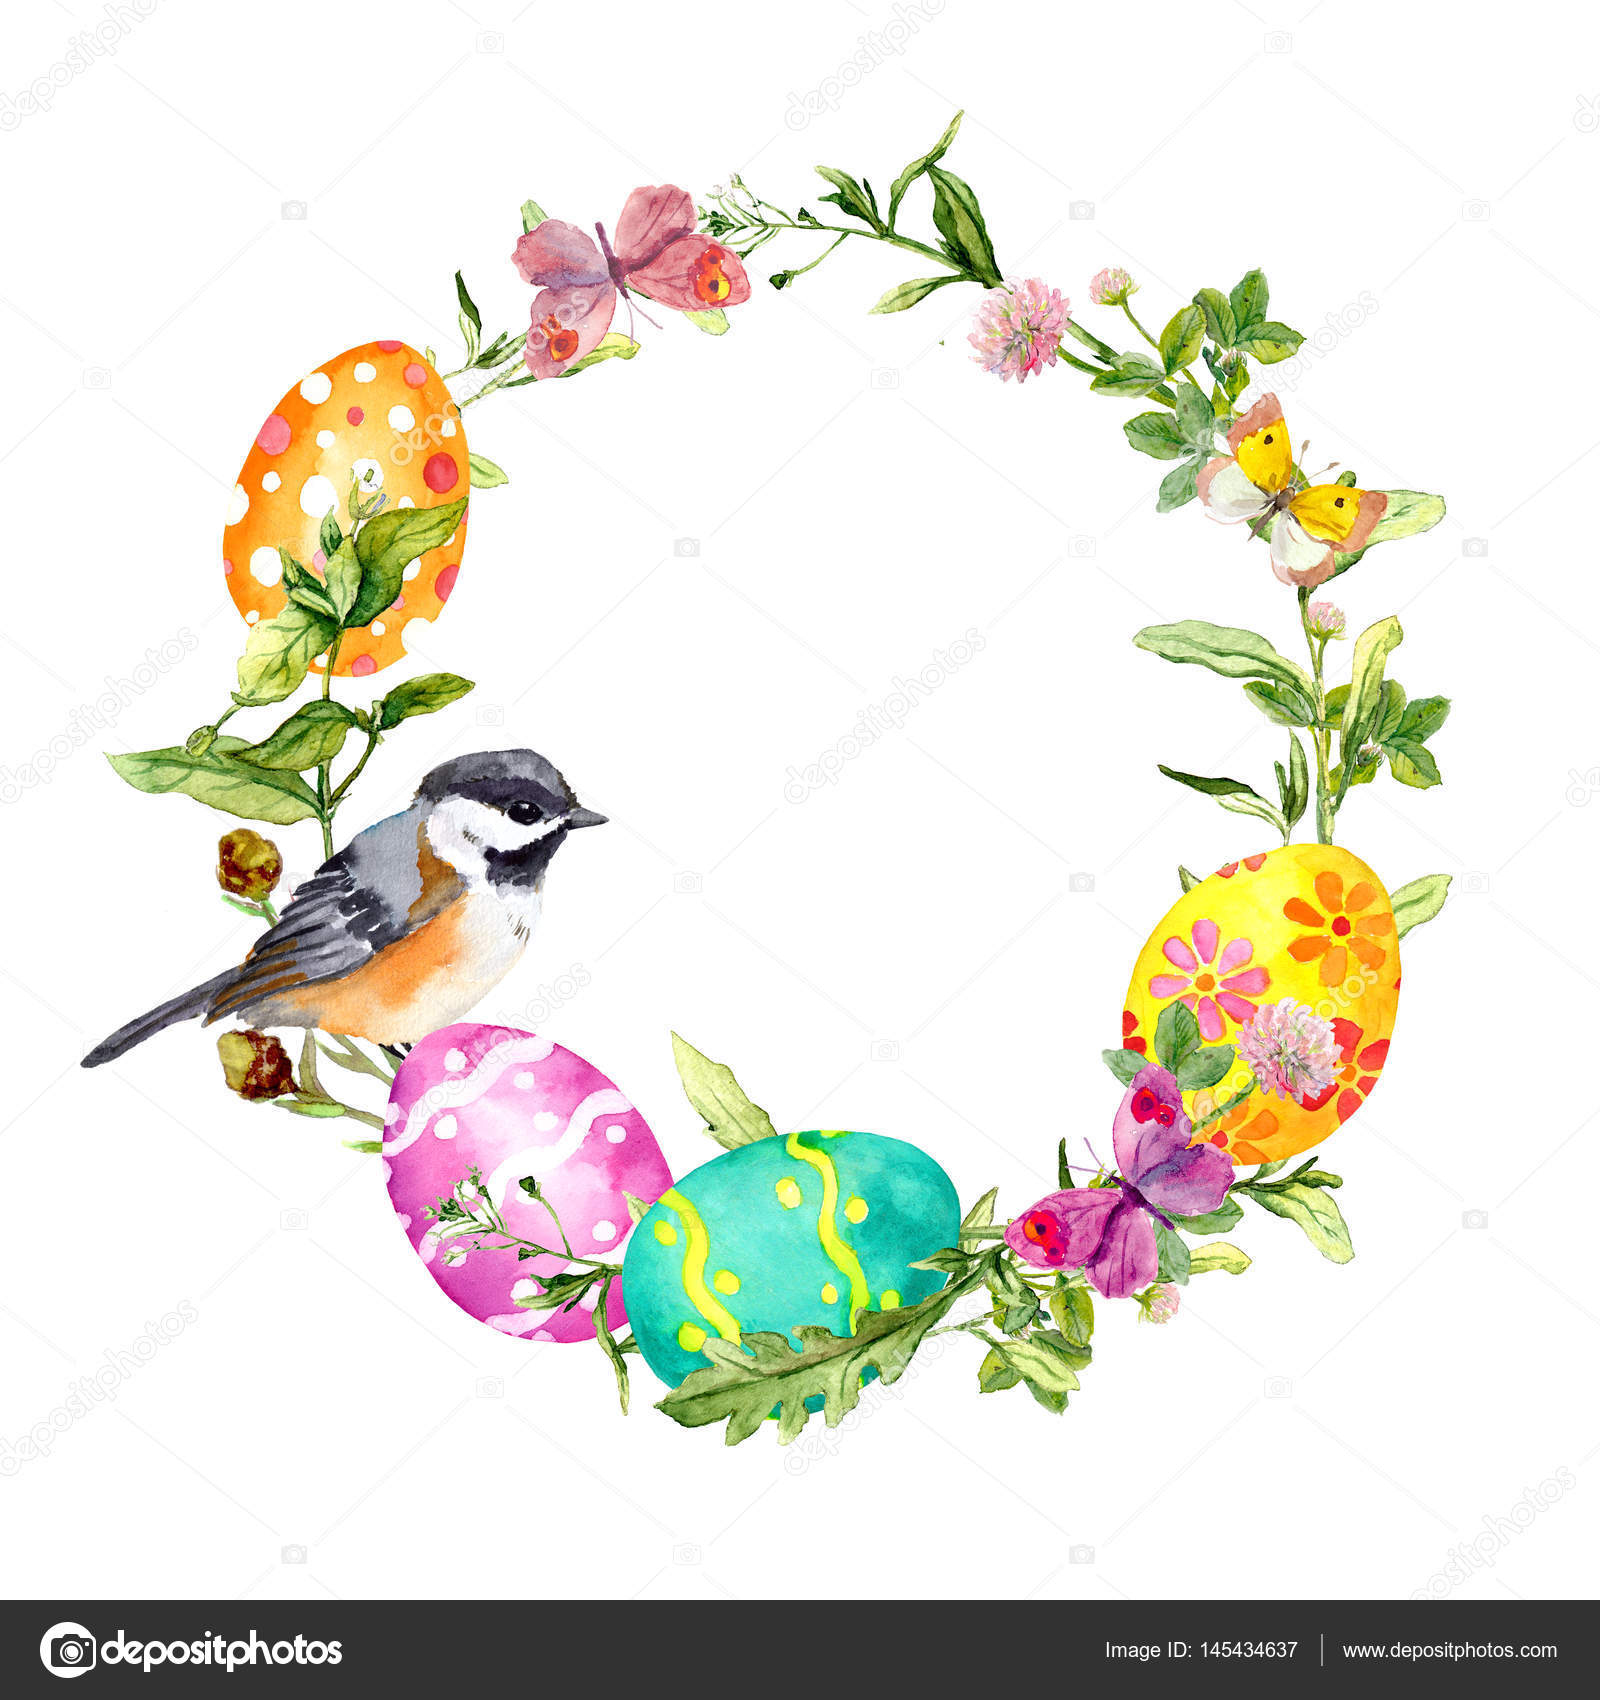 Easter Wreath With Cute Bird Eggs In Grass And Flowers Floral Circle Border Vintage Watercolor Photo By Zzzorikk